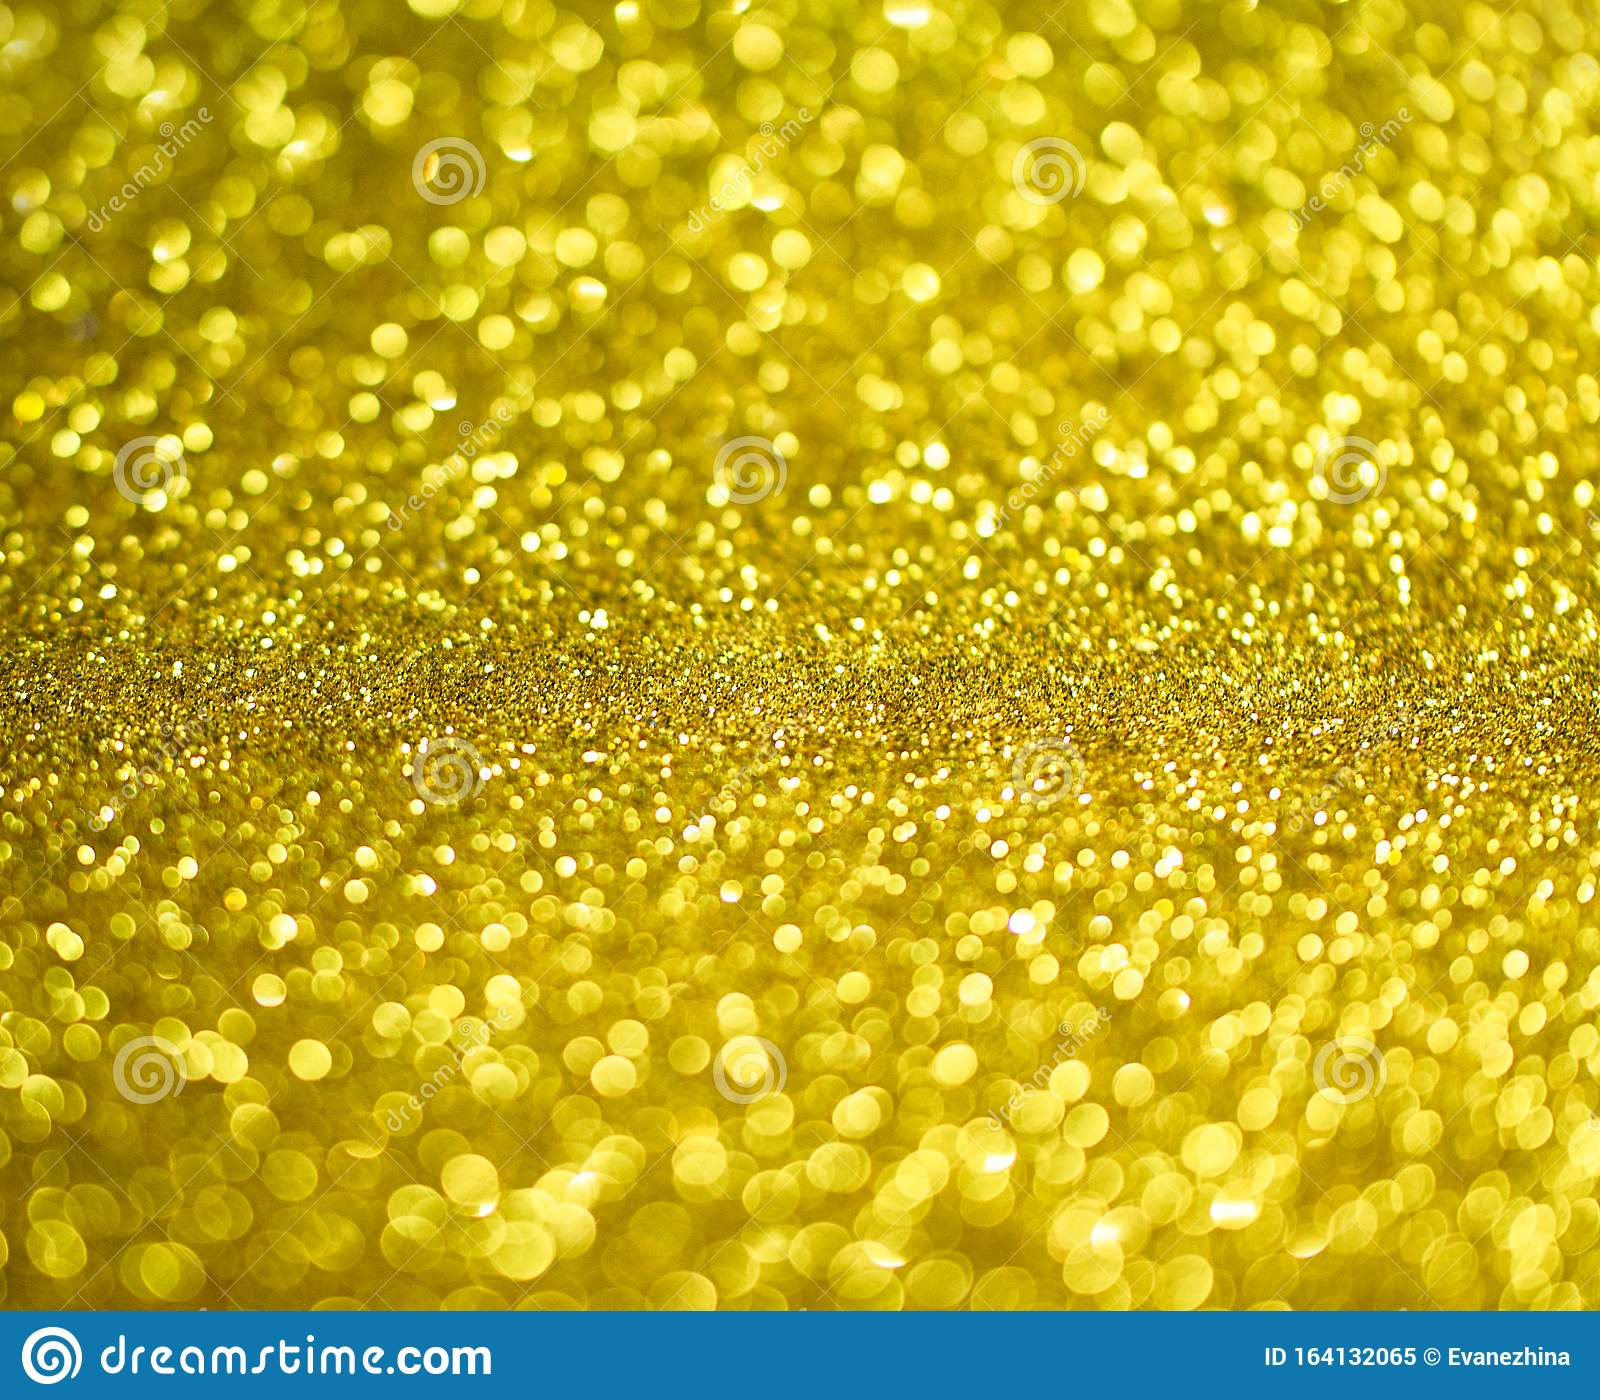 Gold Glitter Texture Christmas Abstract Background Stock Image - Image of blink, gleam: 164132065